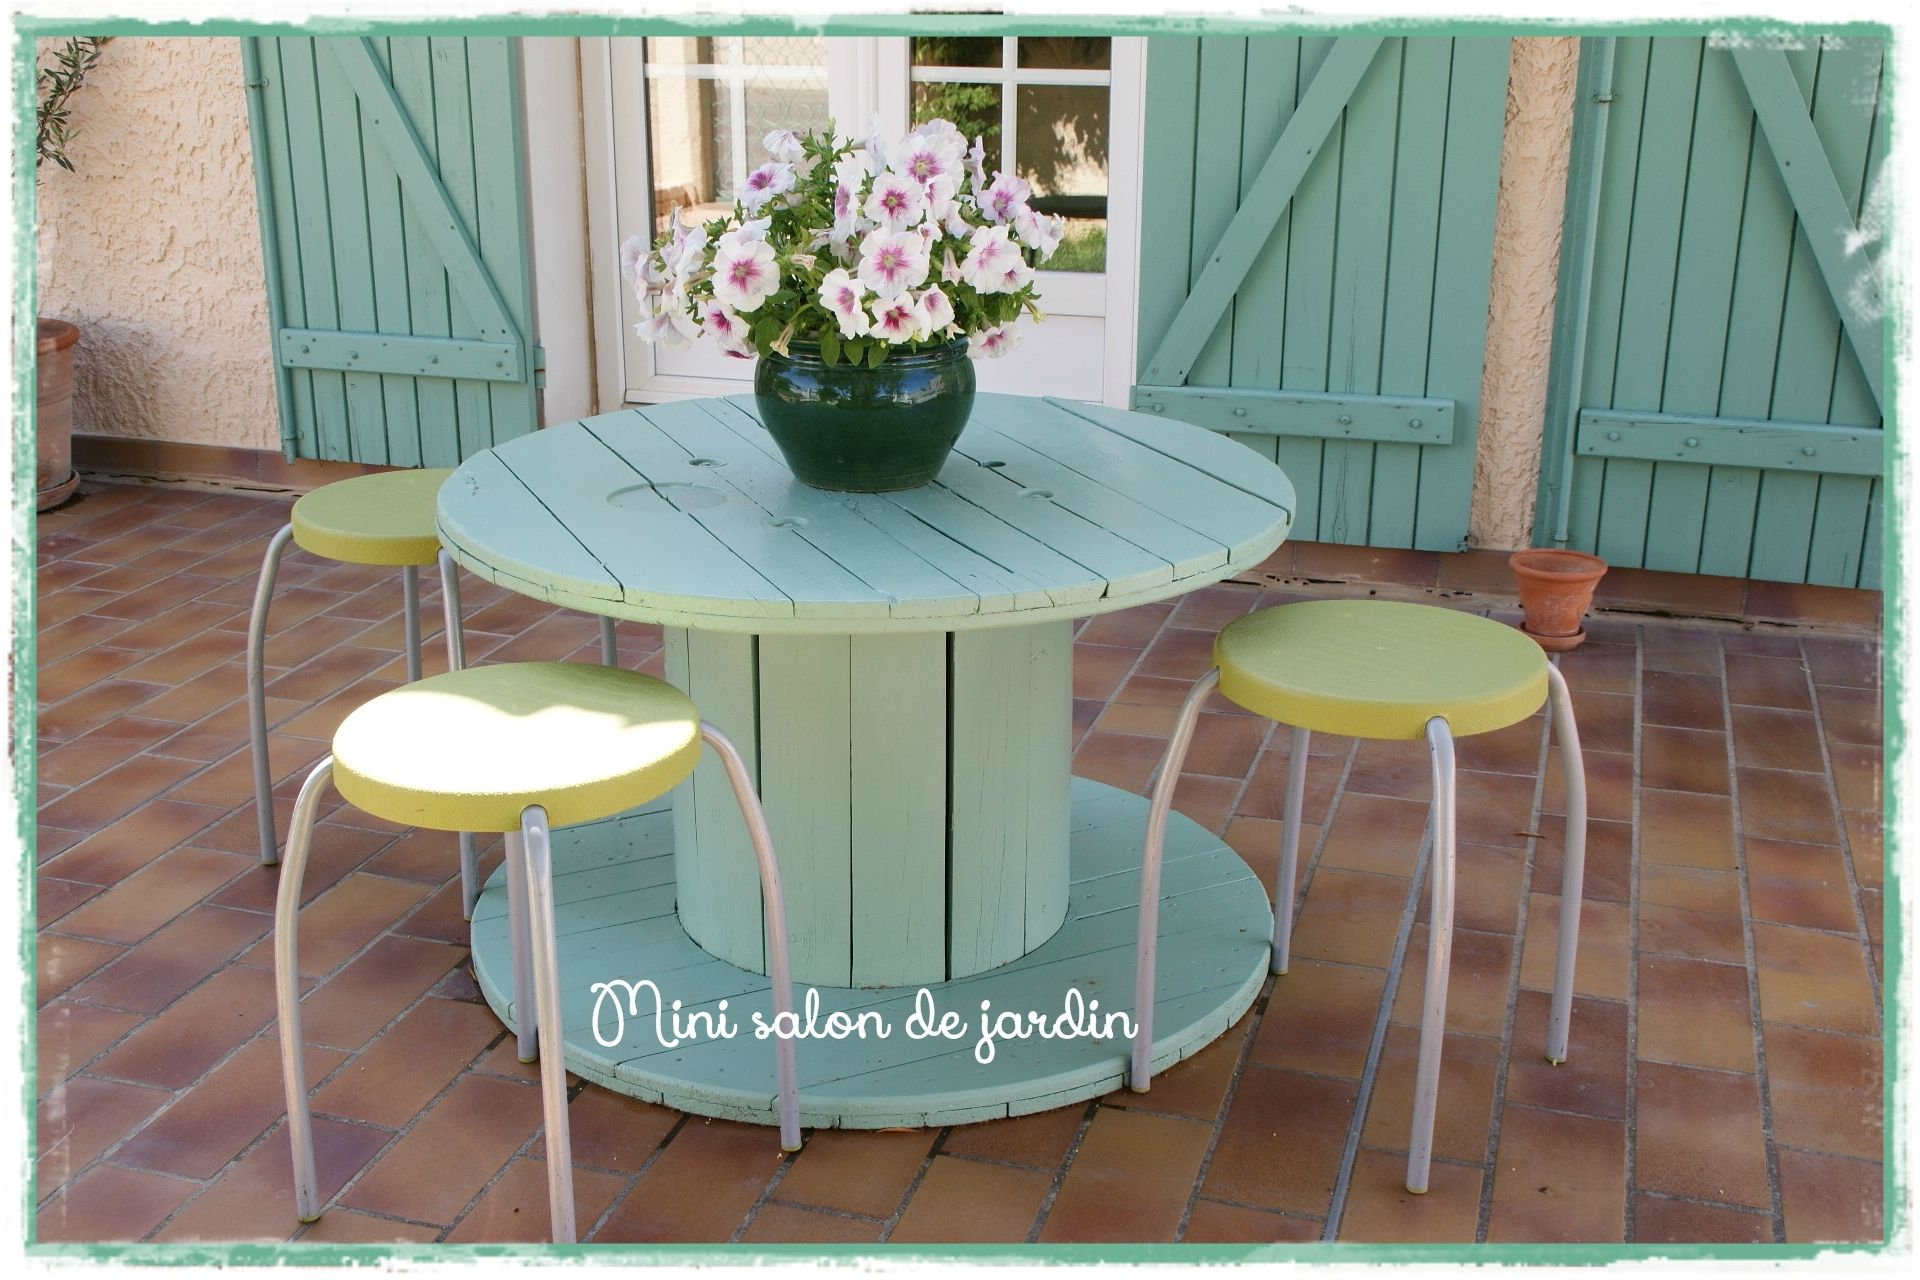 mini salon de jardin avec un touret jardin pinterest touret salon et minis. Black Bedroom Furniture Sets. Home Design Ideas